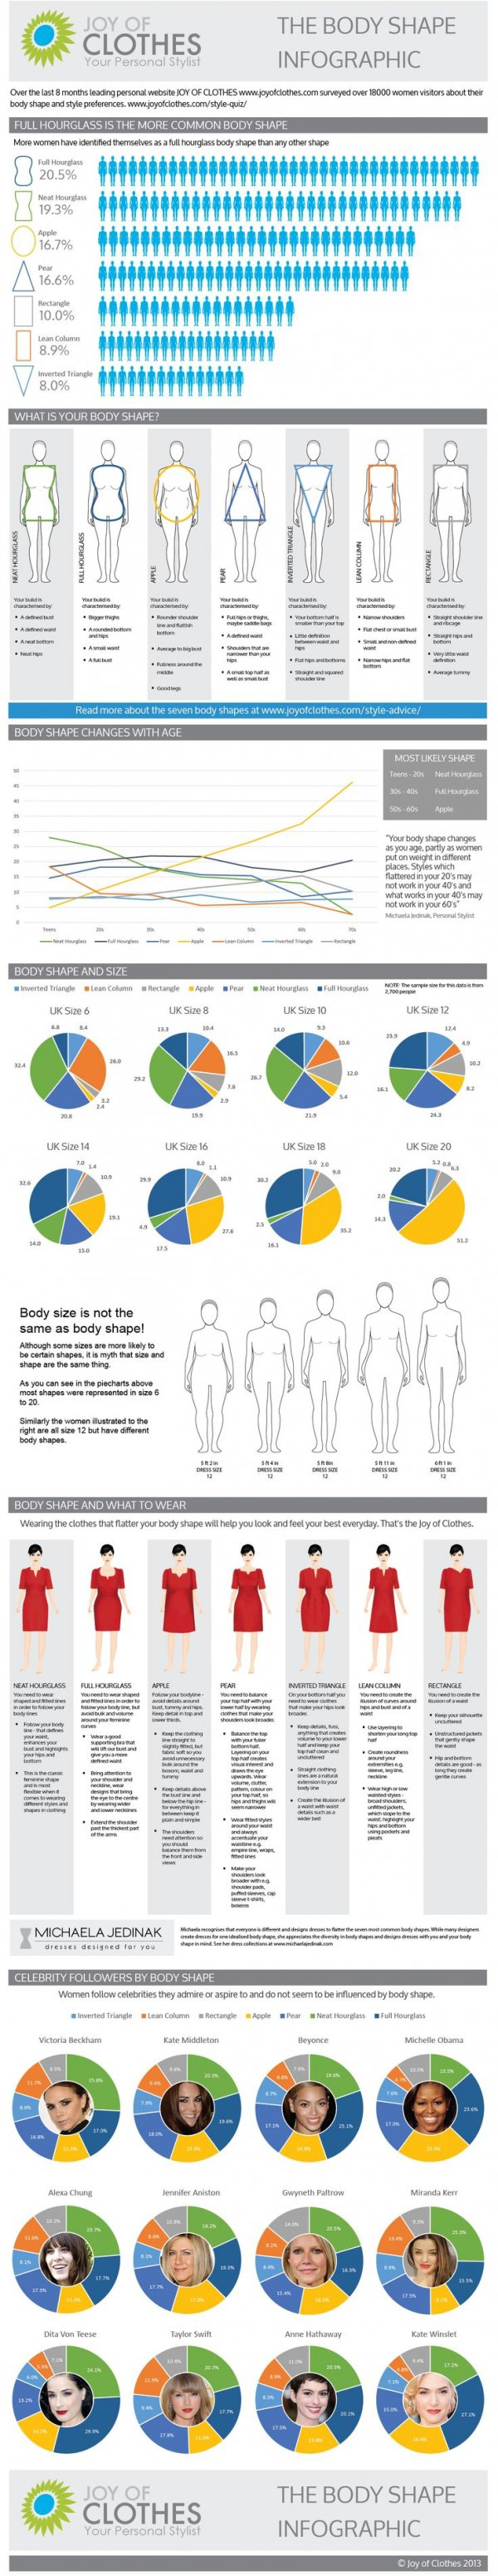 Body Shape Statistics